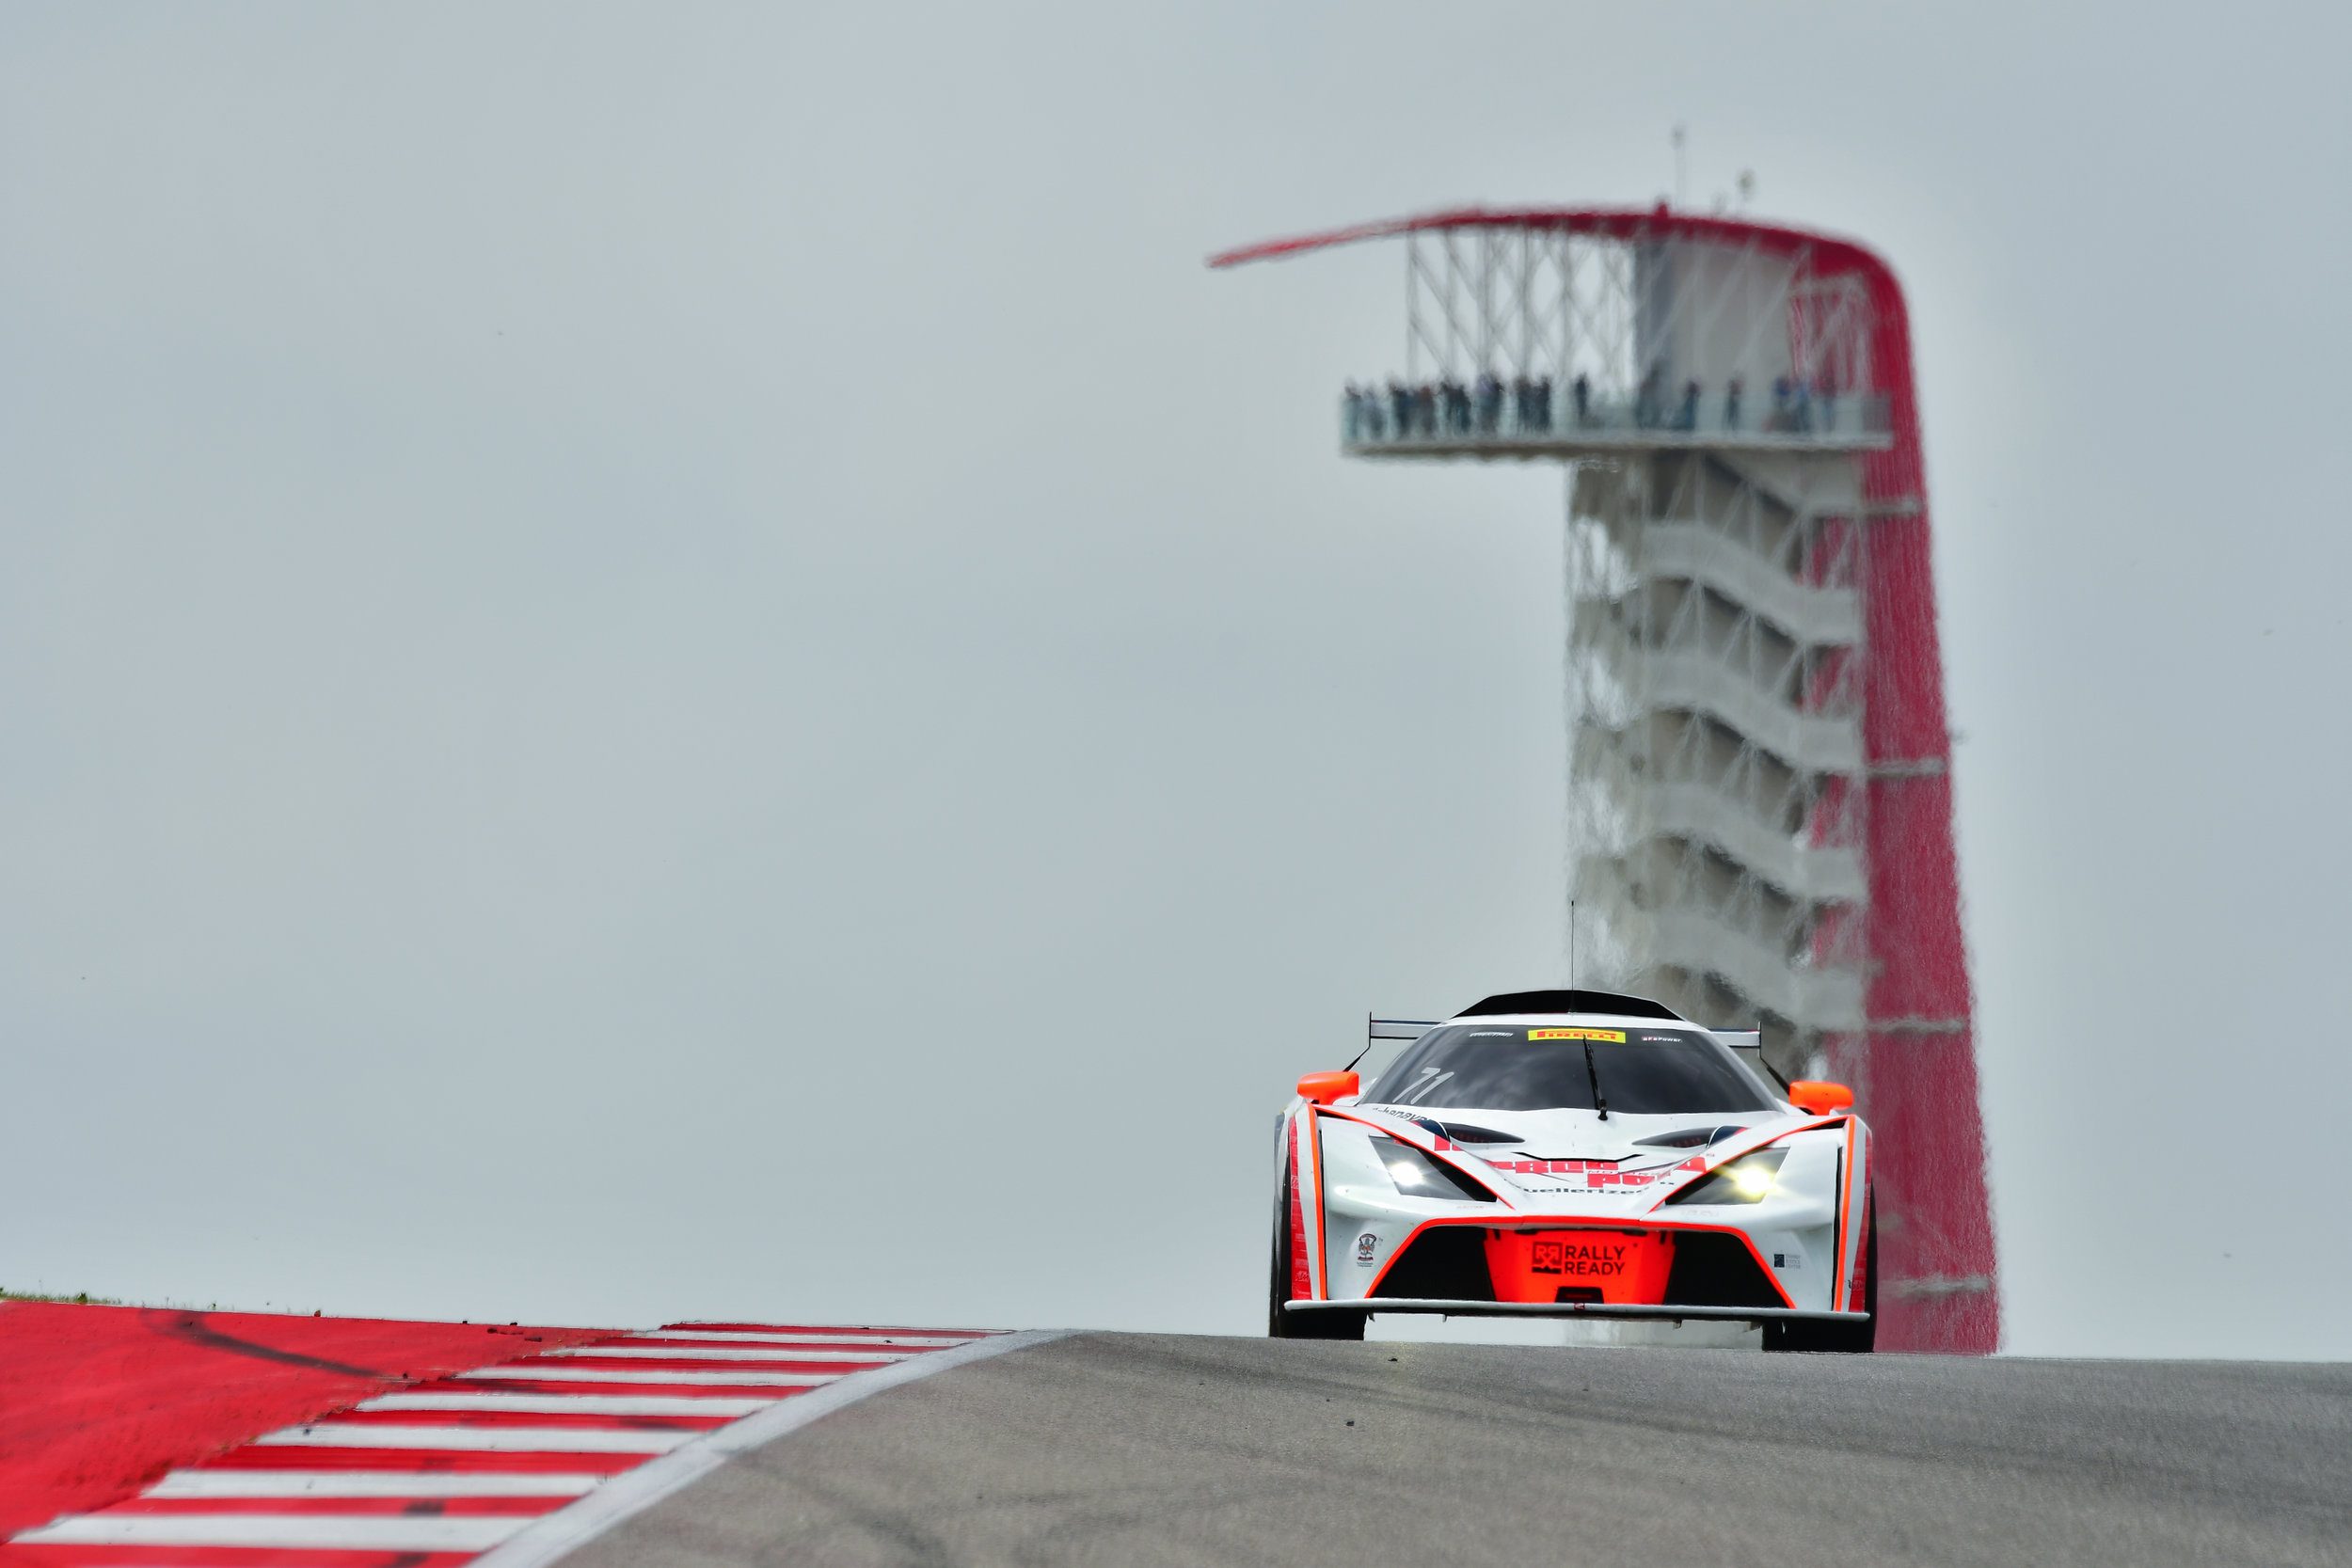 PWC Grand Prix of Circuit of the Americas